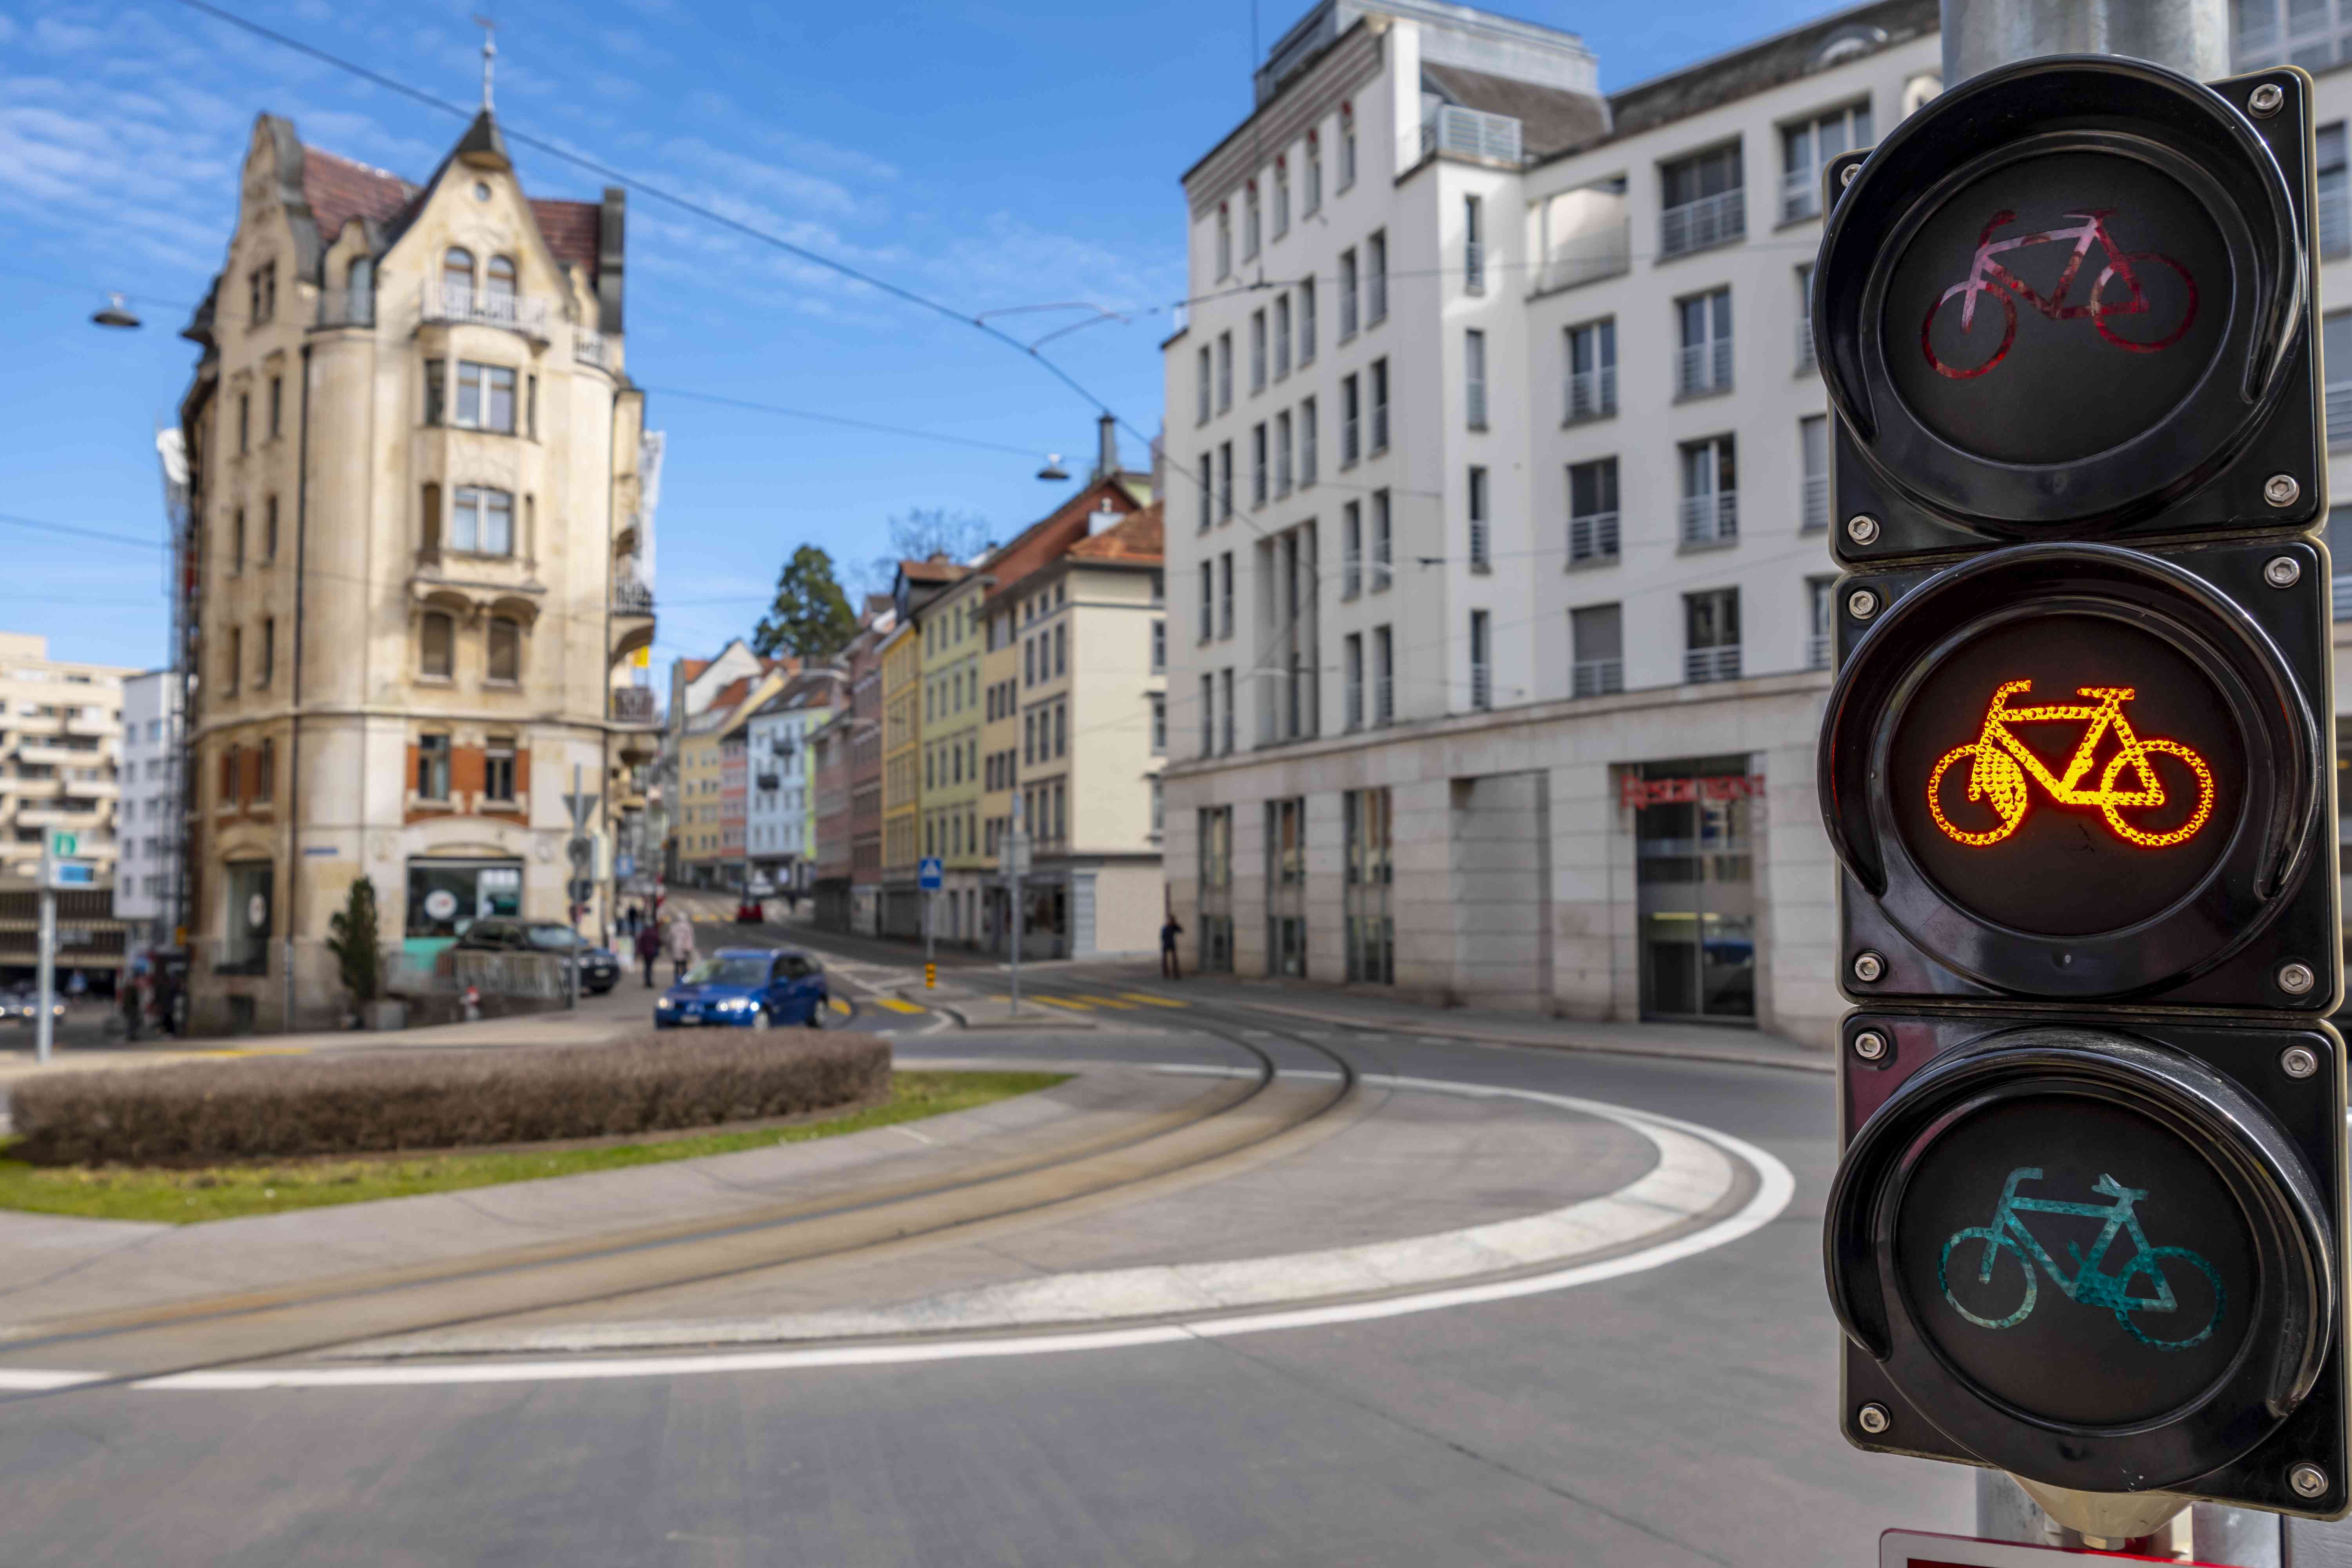 Traffic Light for Bicycle in City